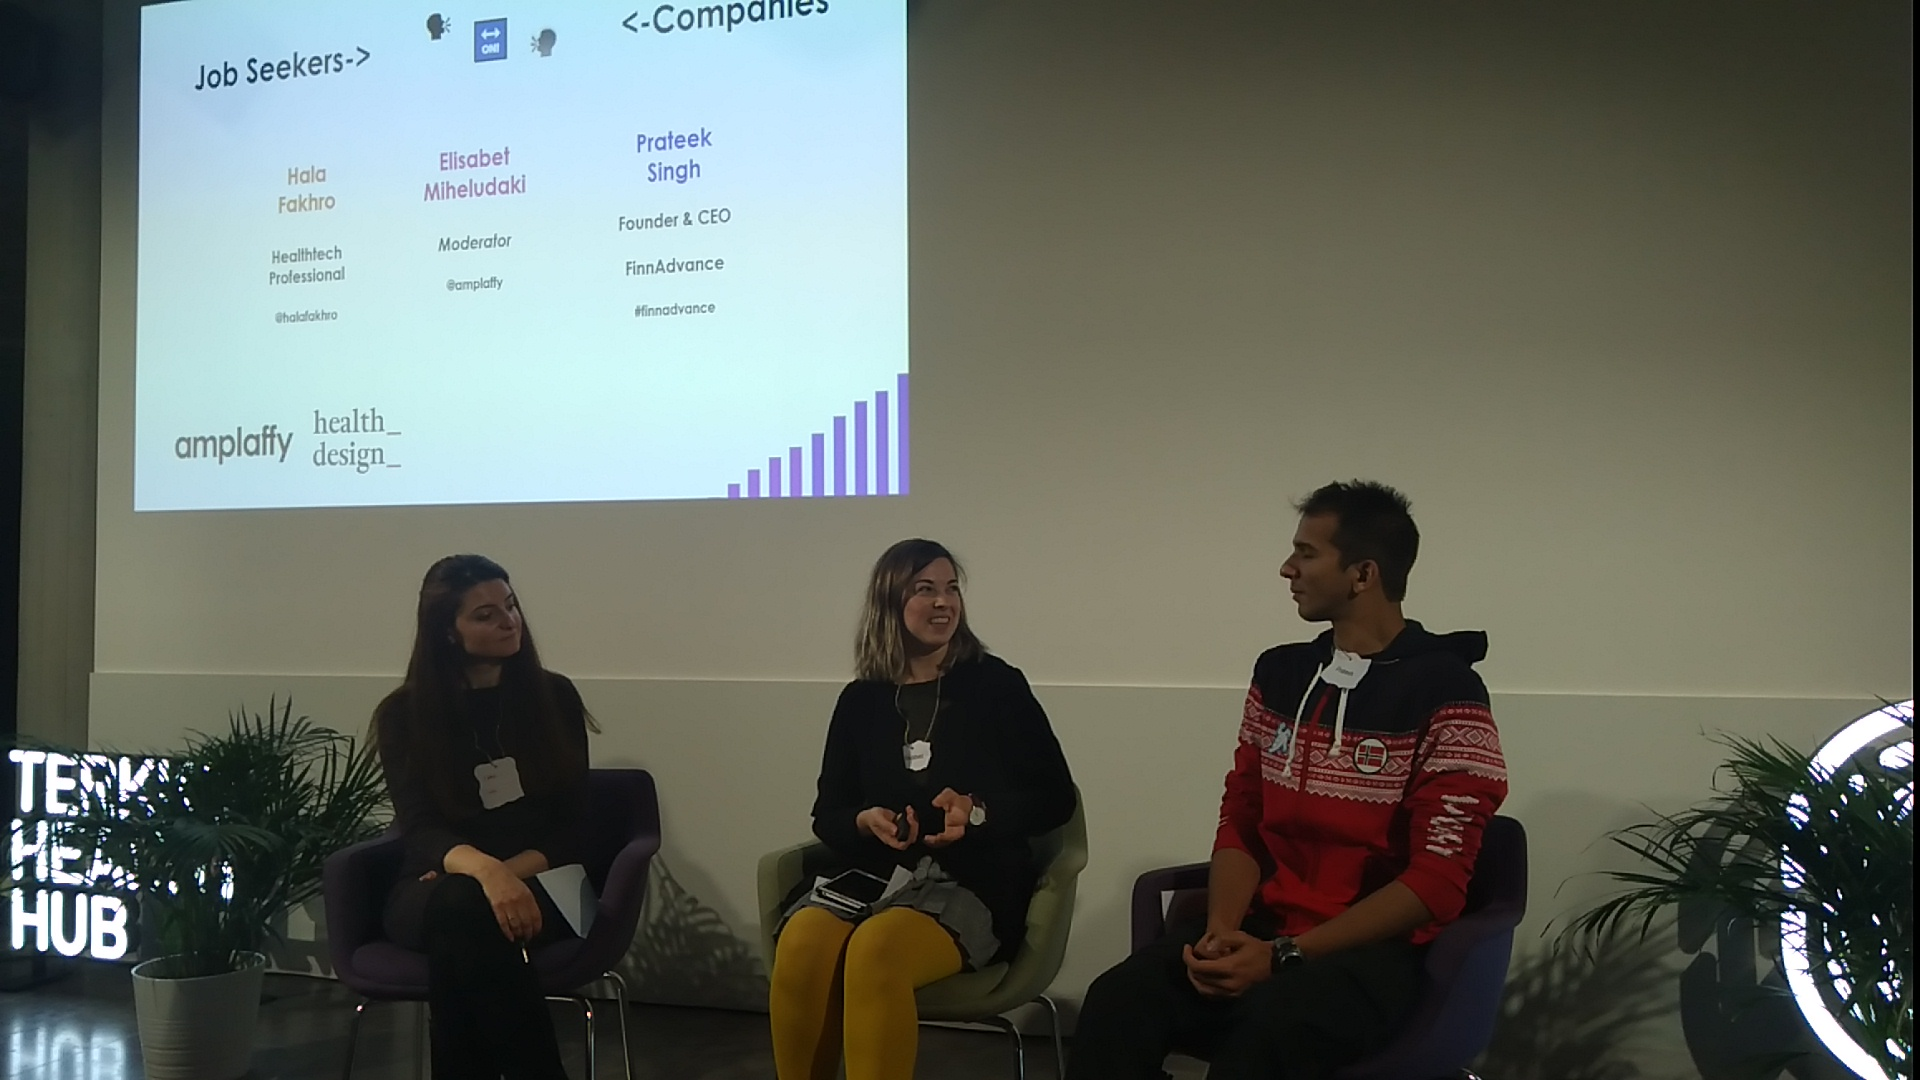 Bridge the Hiring Gap Health edition - discussion between companies and jobseeekers in Fall 2019